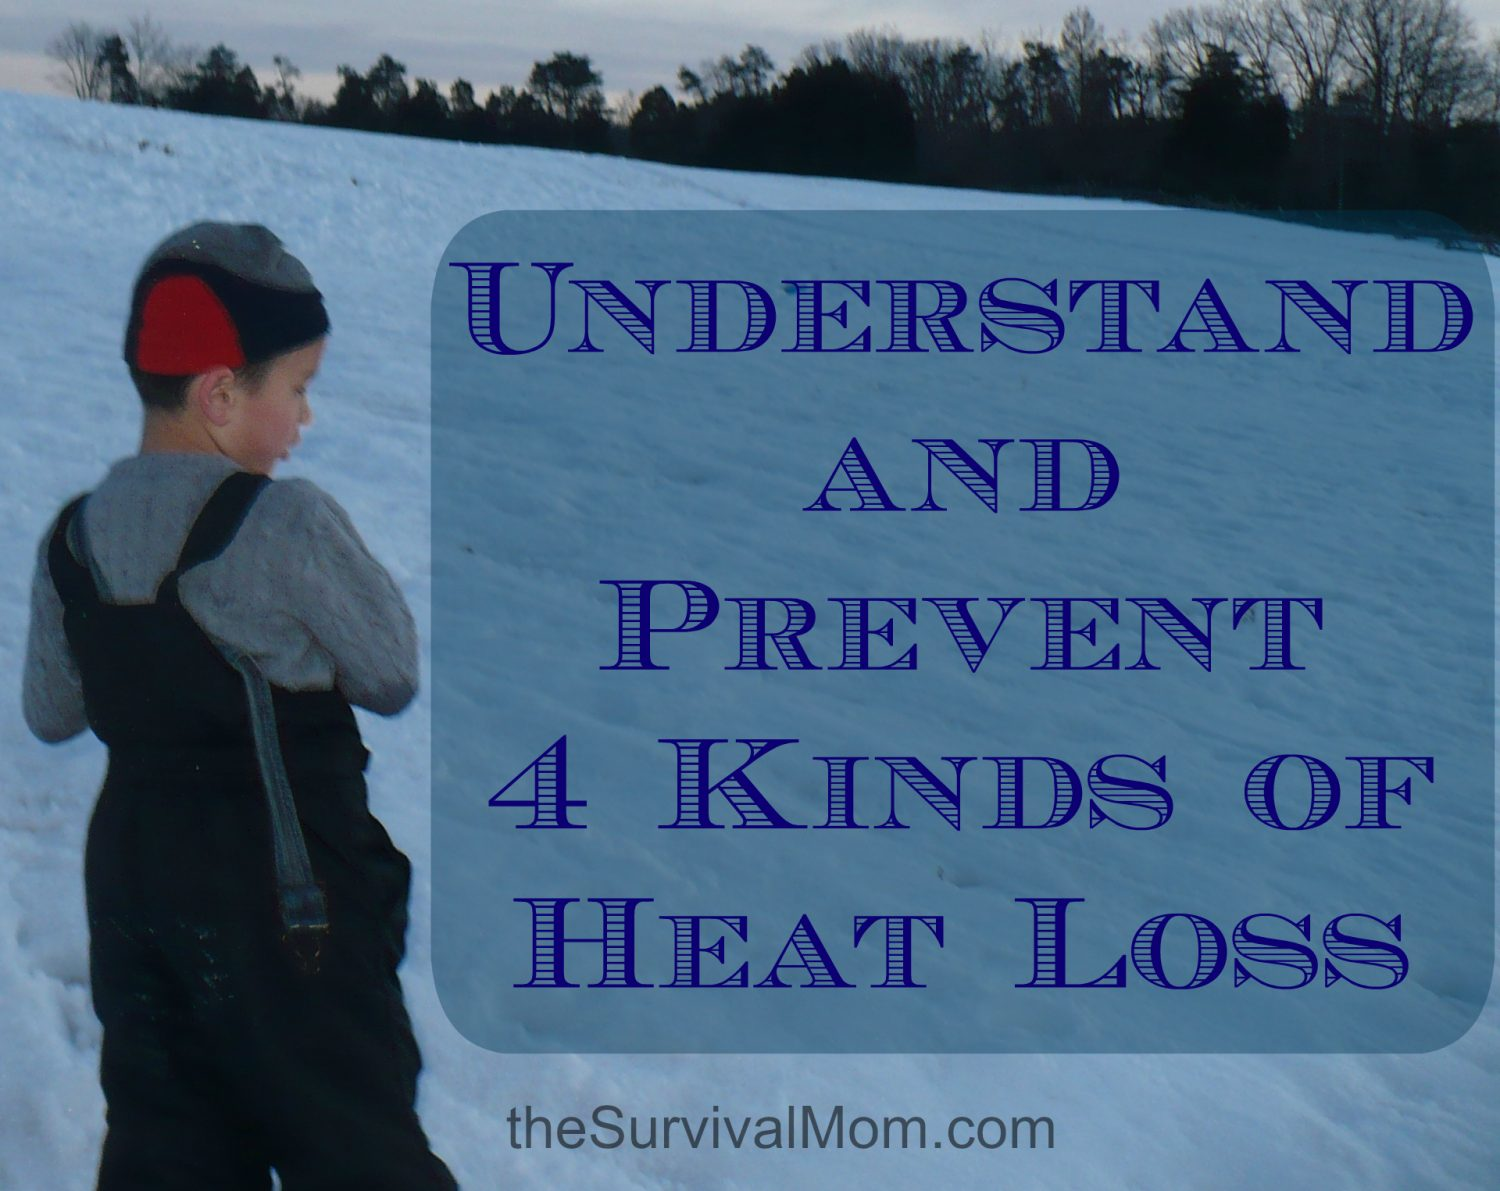 Do you know how to prevent heat loss? Do you know how to combat the four most common kinds? Do your KIDS know? If not, learn more in this post! | via www.TheSurvivalMom.com